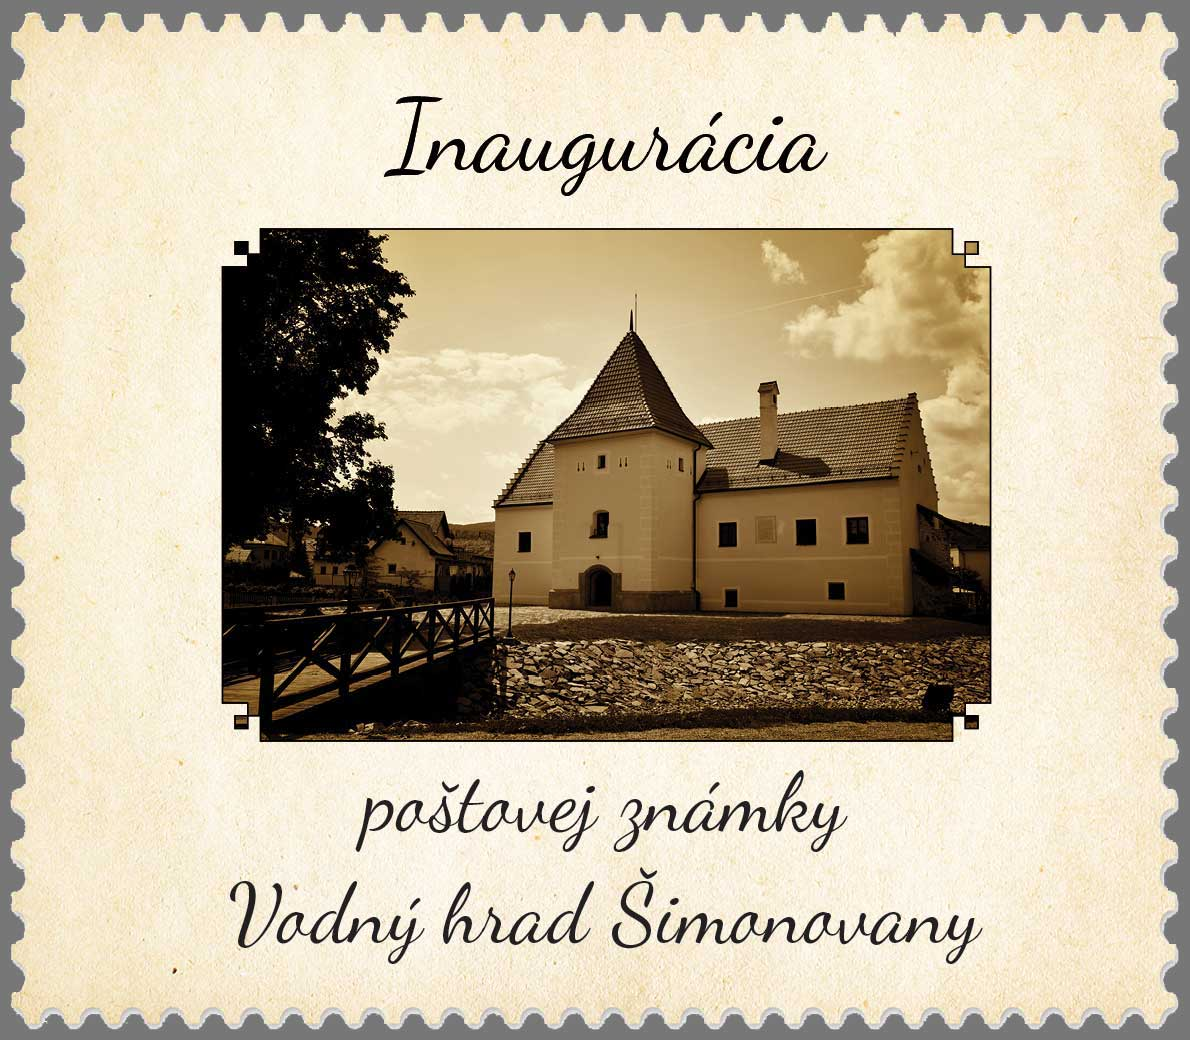 New issues, inaugurations, the most beautiful stamps Tribute to the manor house in Partizánske: They immortalized it on the original postage stamp